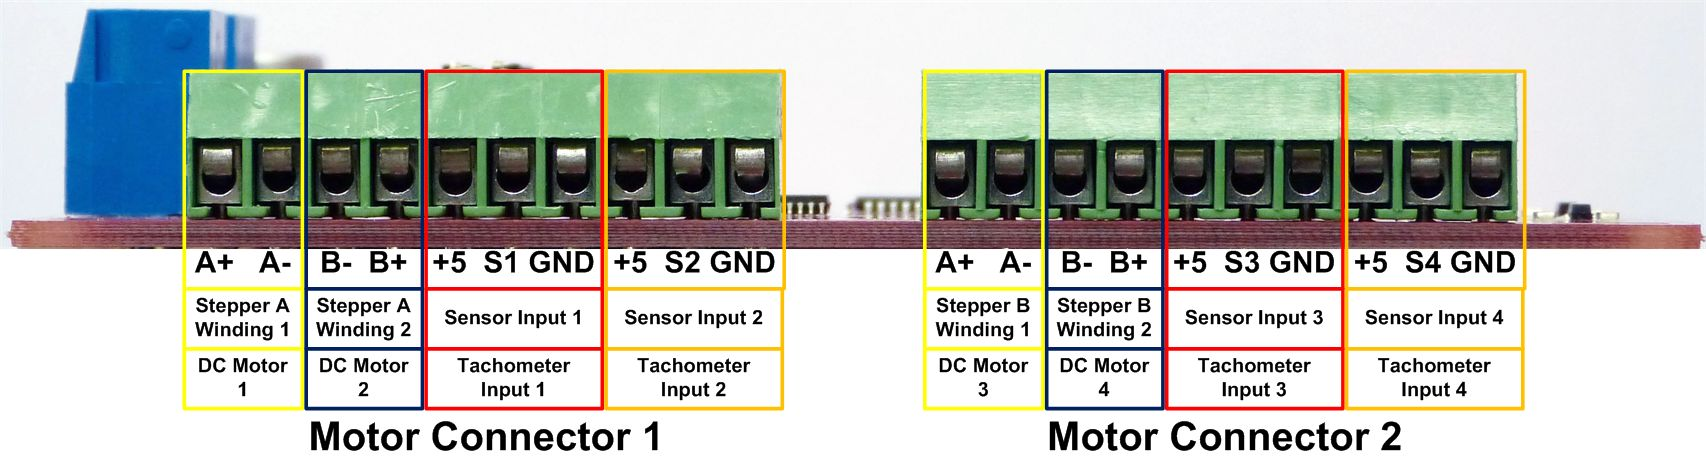 hight resolution of each motor connector can drive two dc motors for a total of 4 motors per board the pictures and images below illustrate how these connections should be